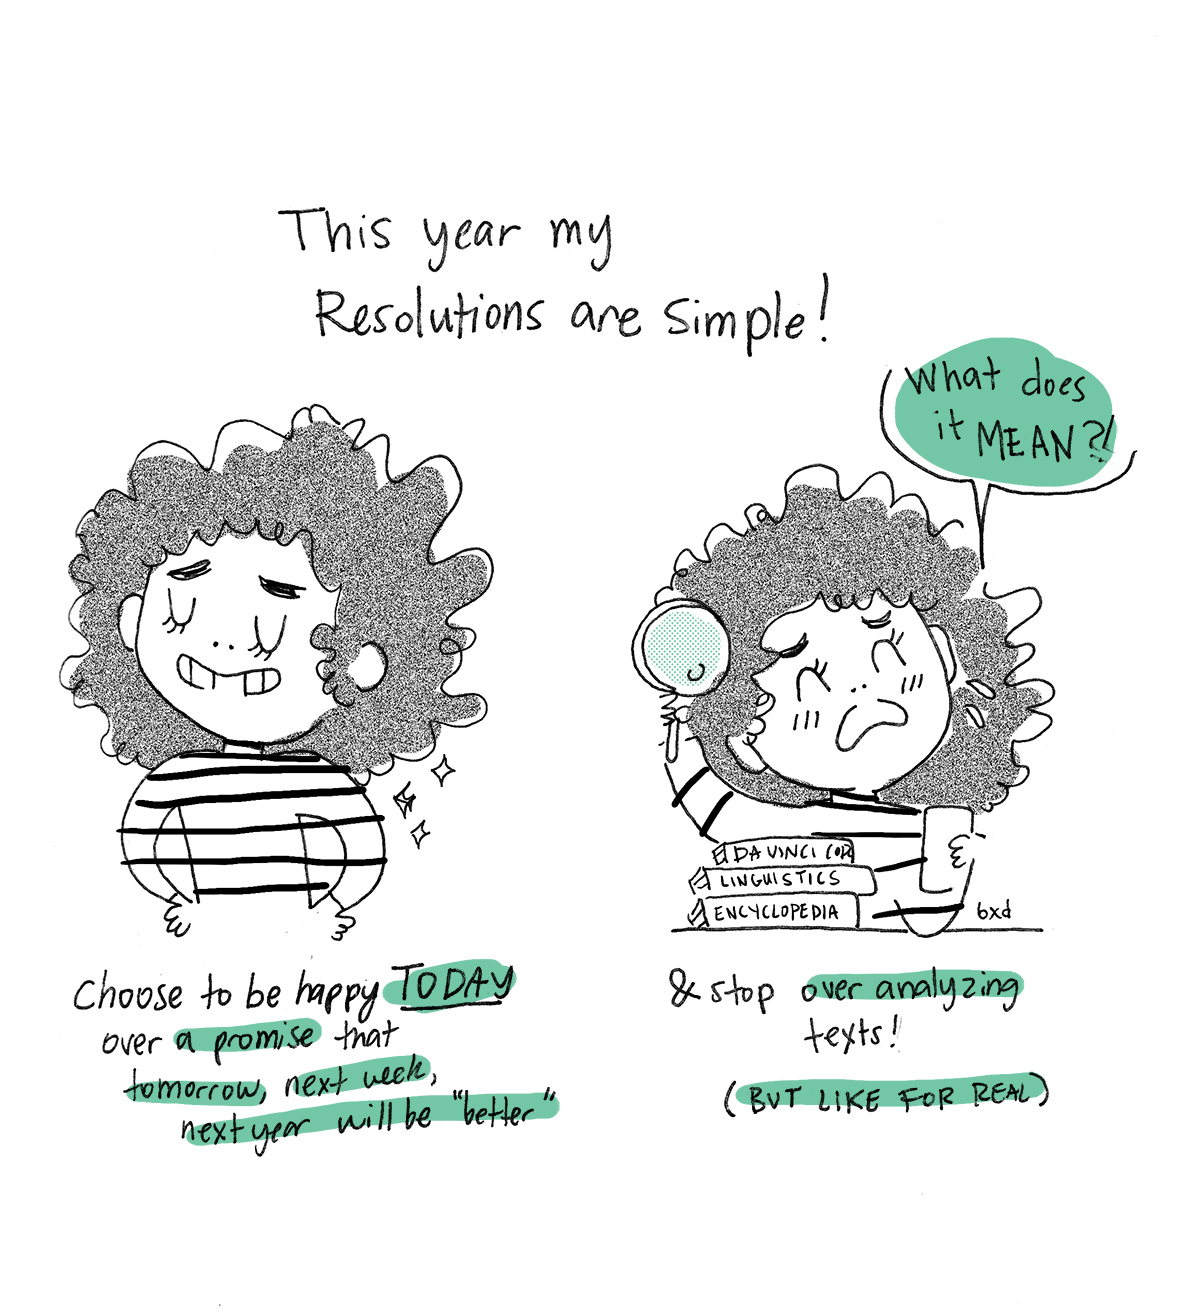 The simple thing I resolve to do this year